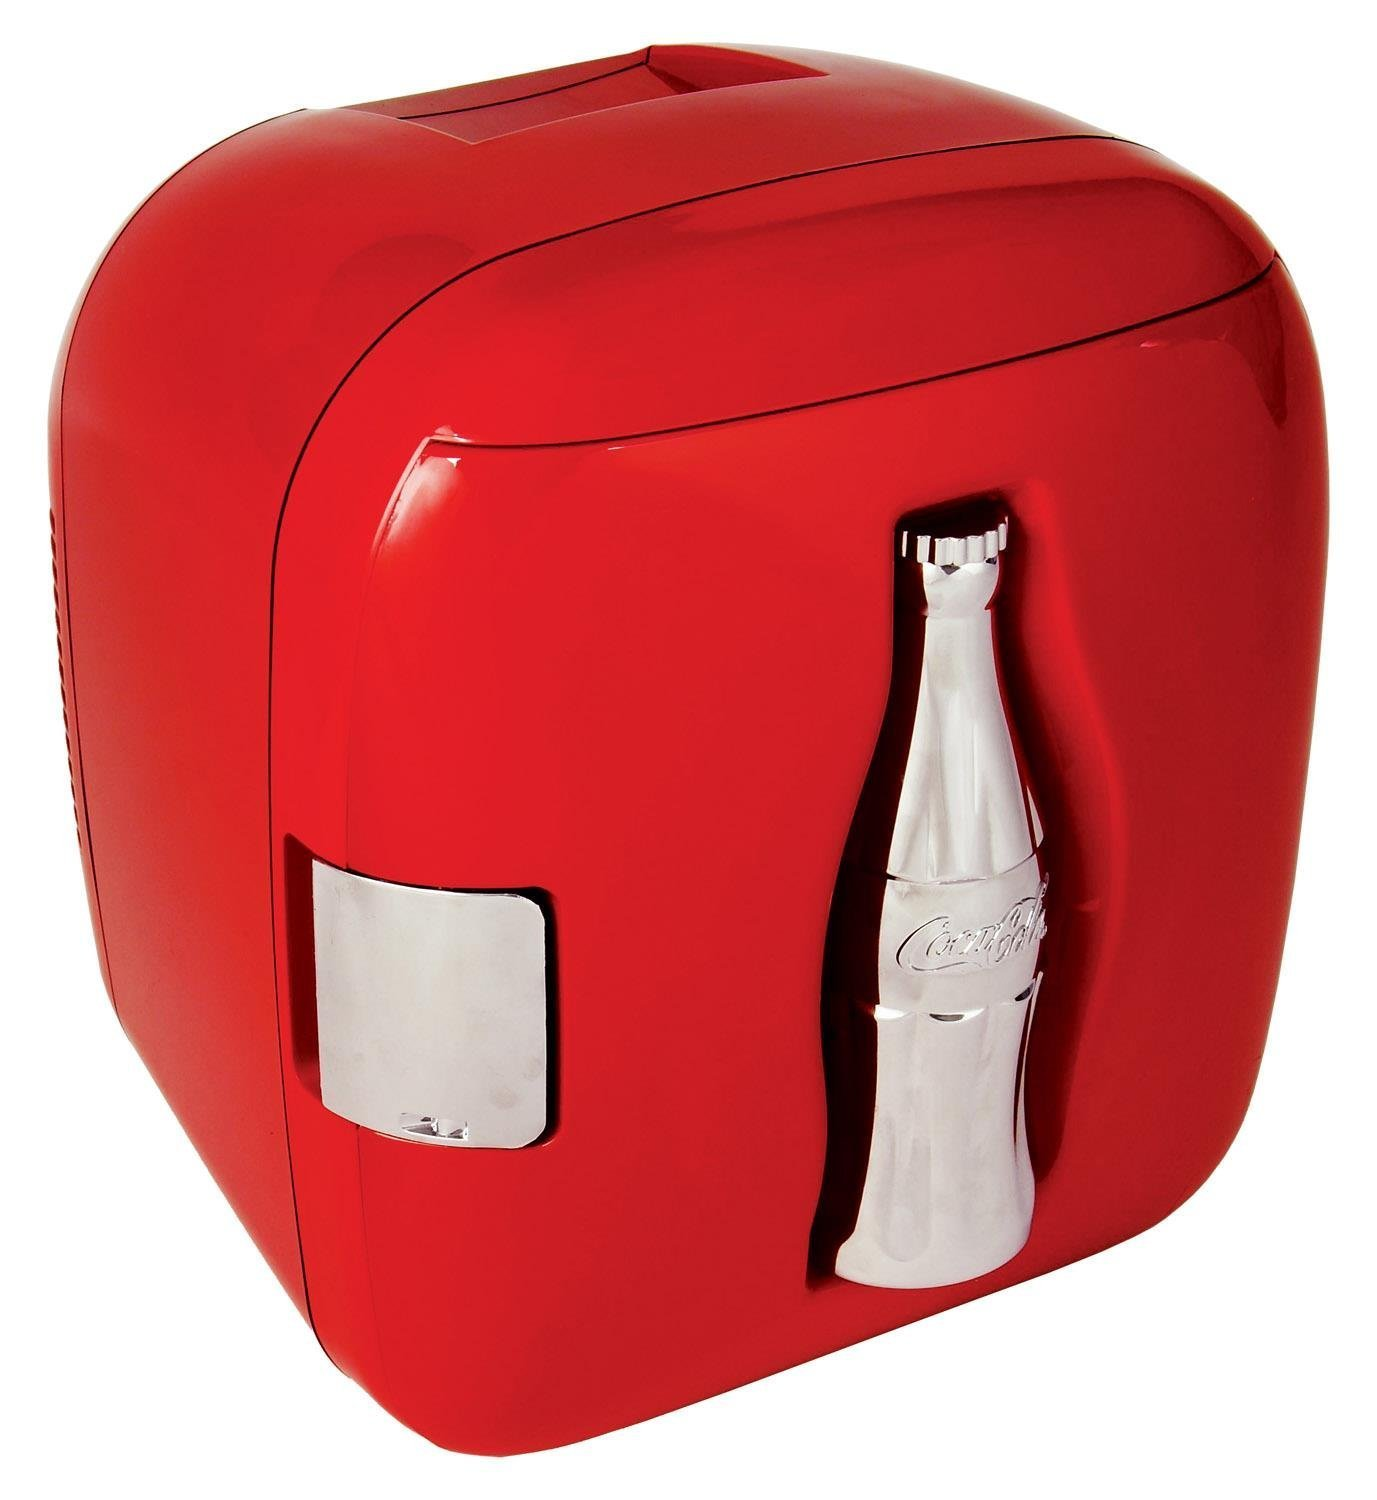 Coca-Cola CCU09 Cube Bottle Cooler, Red